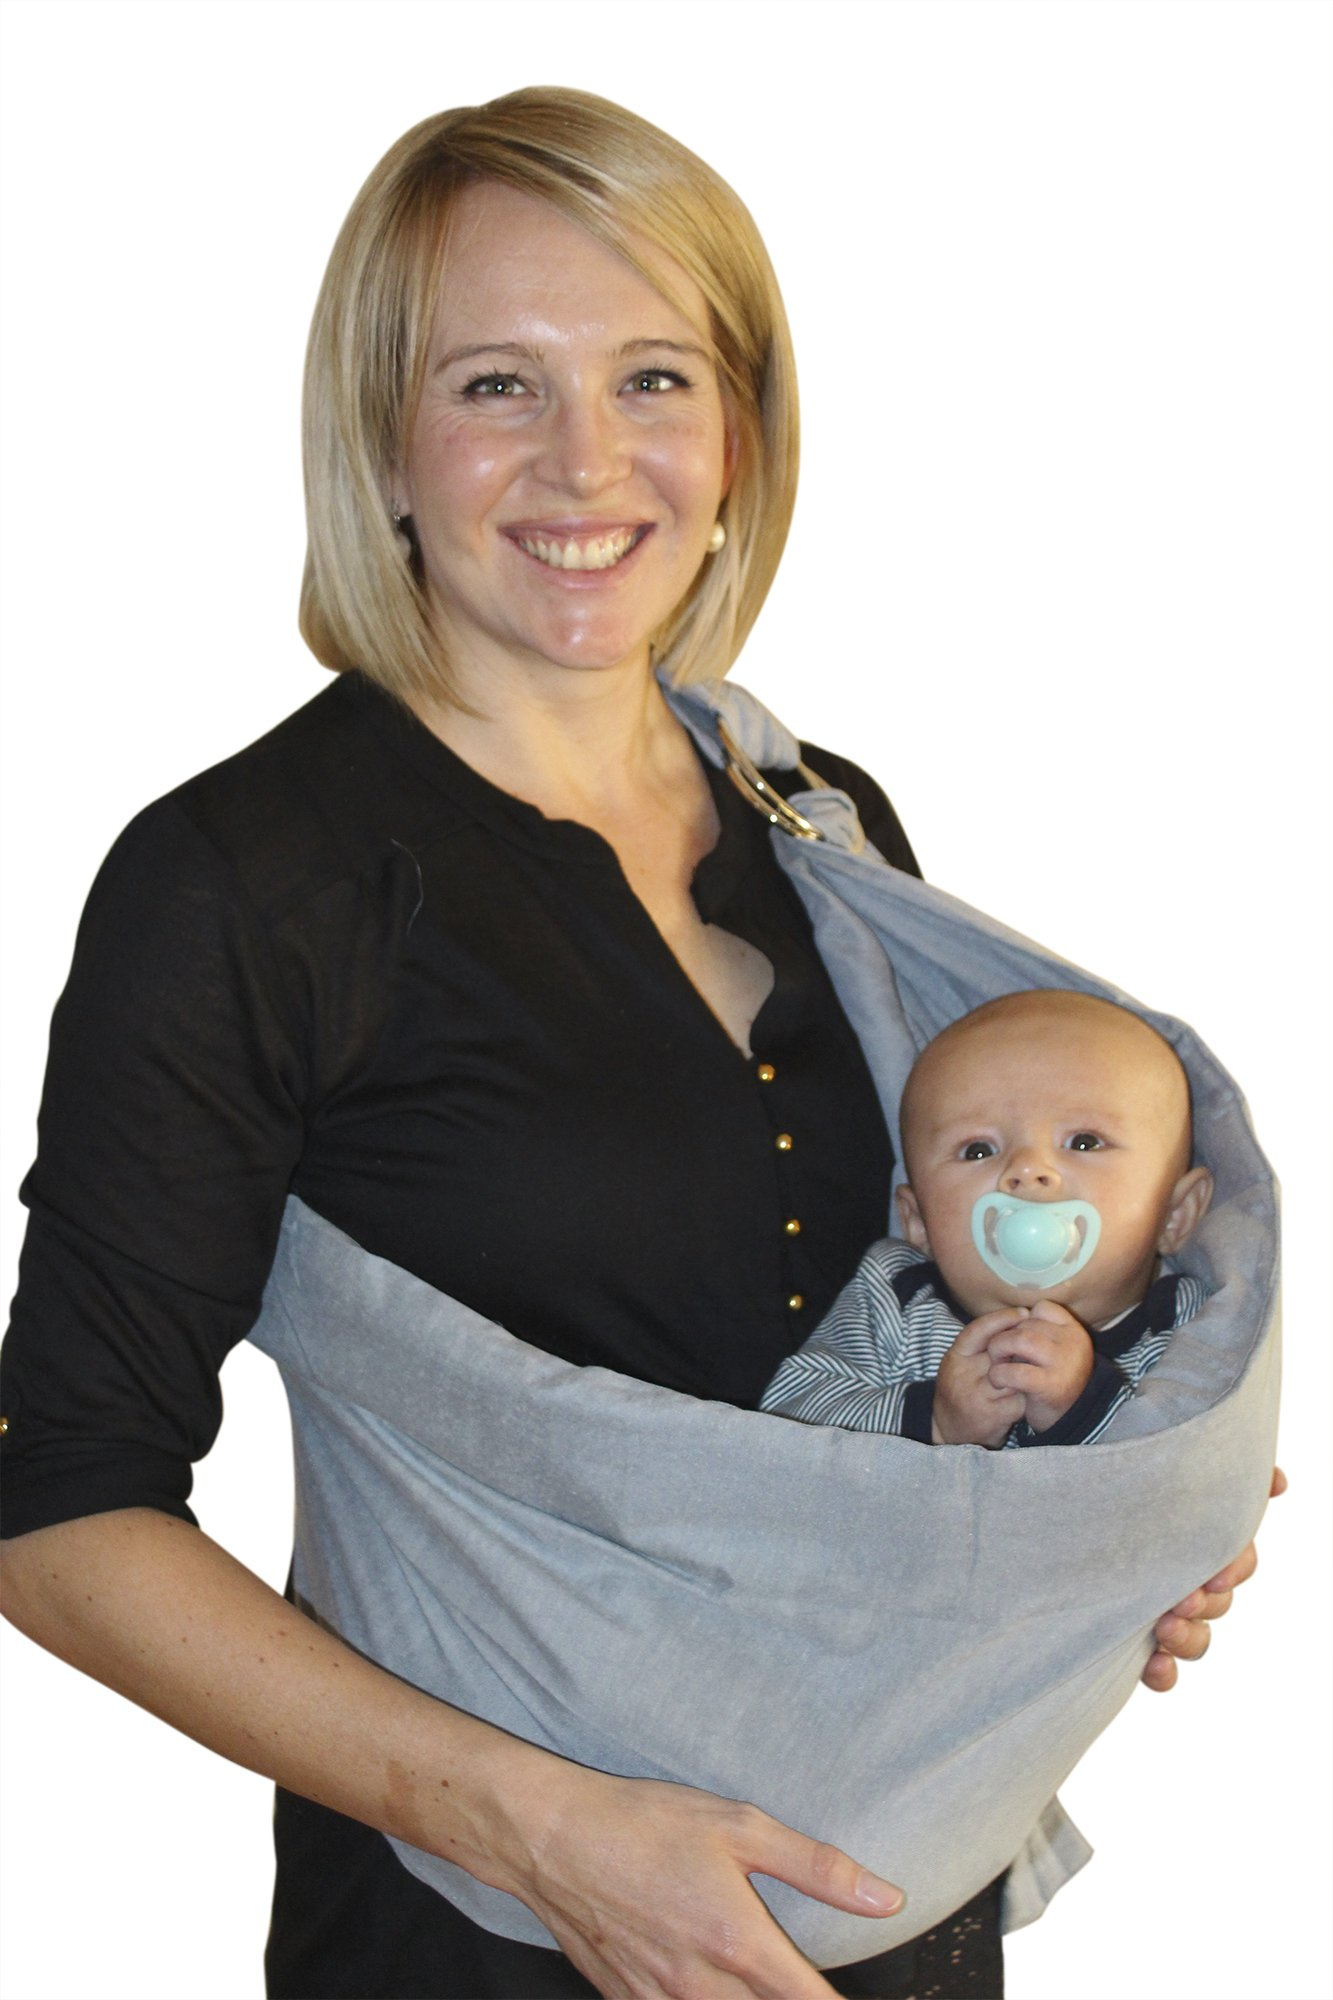 OUR BEST BABY SLING WRAP CARRIER for Newborns, Infants, & Toddlers, Ergonomically-Designed Child Carriers, Makes Parent-Child Bonding Time Easier & Extra-Comfortable, The Perfect Baby Shower Gift